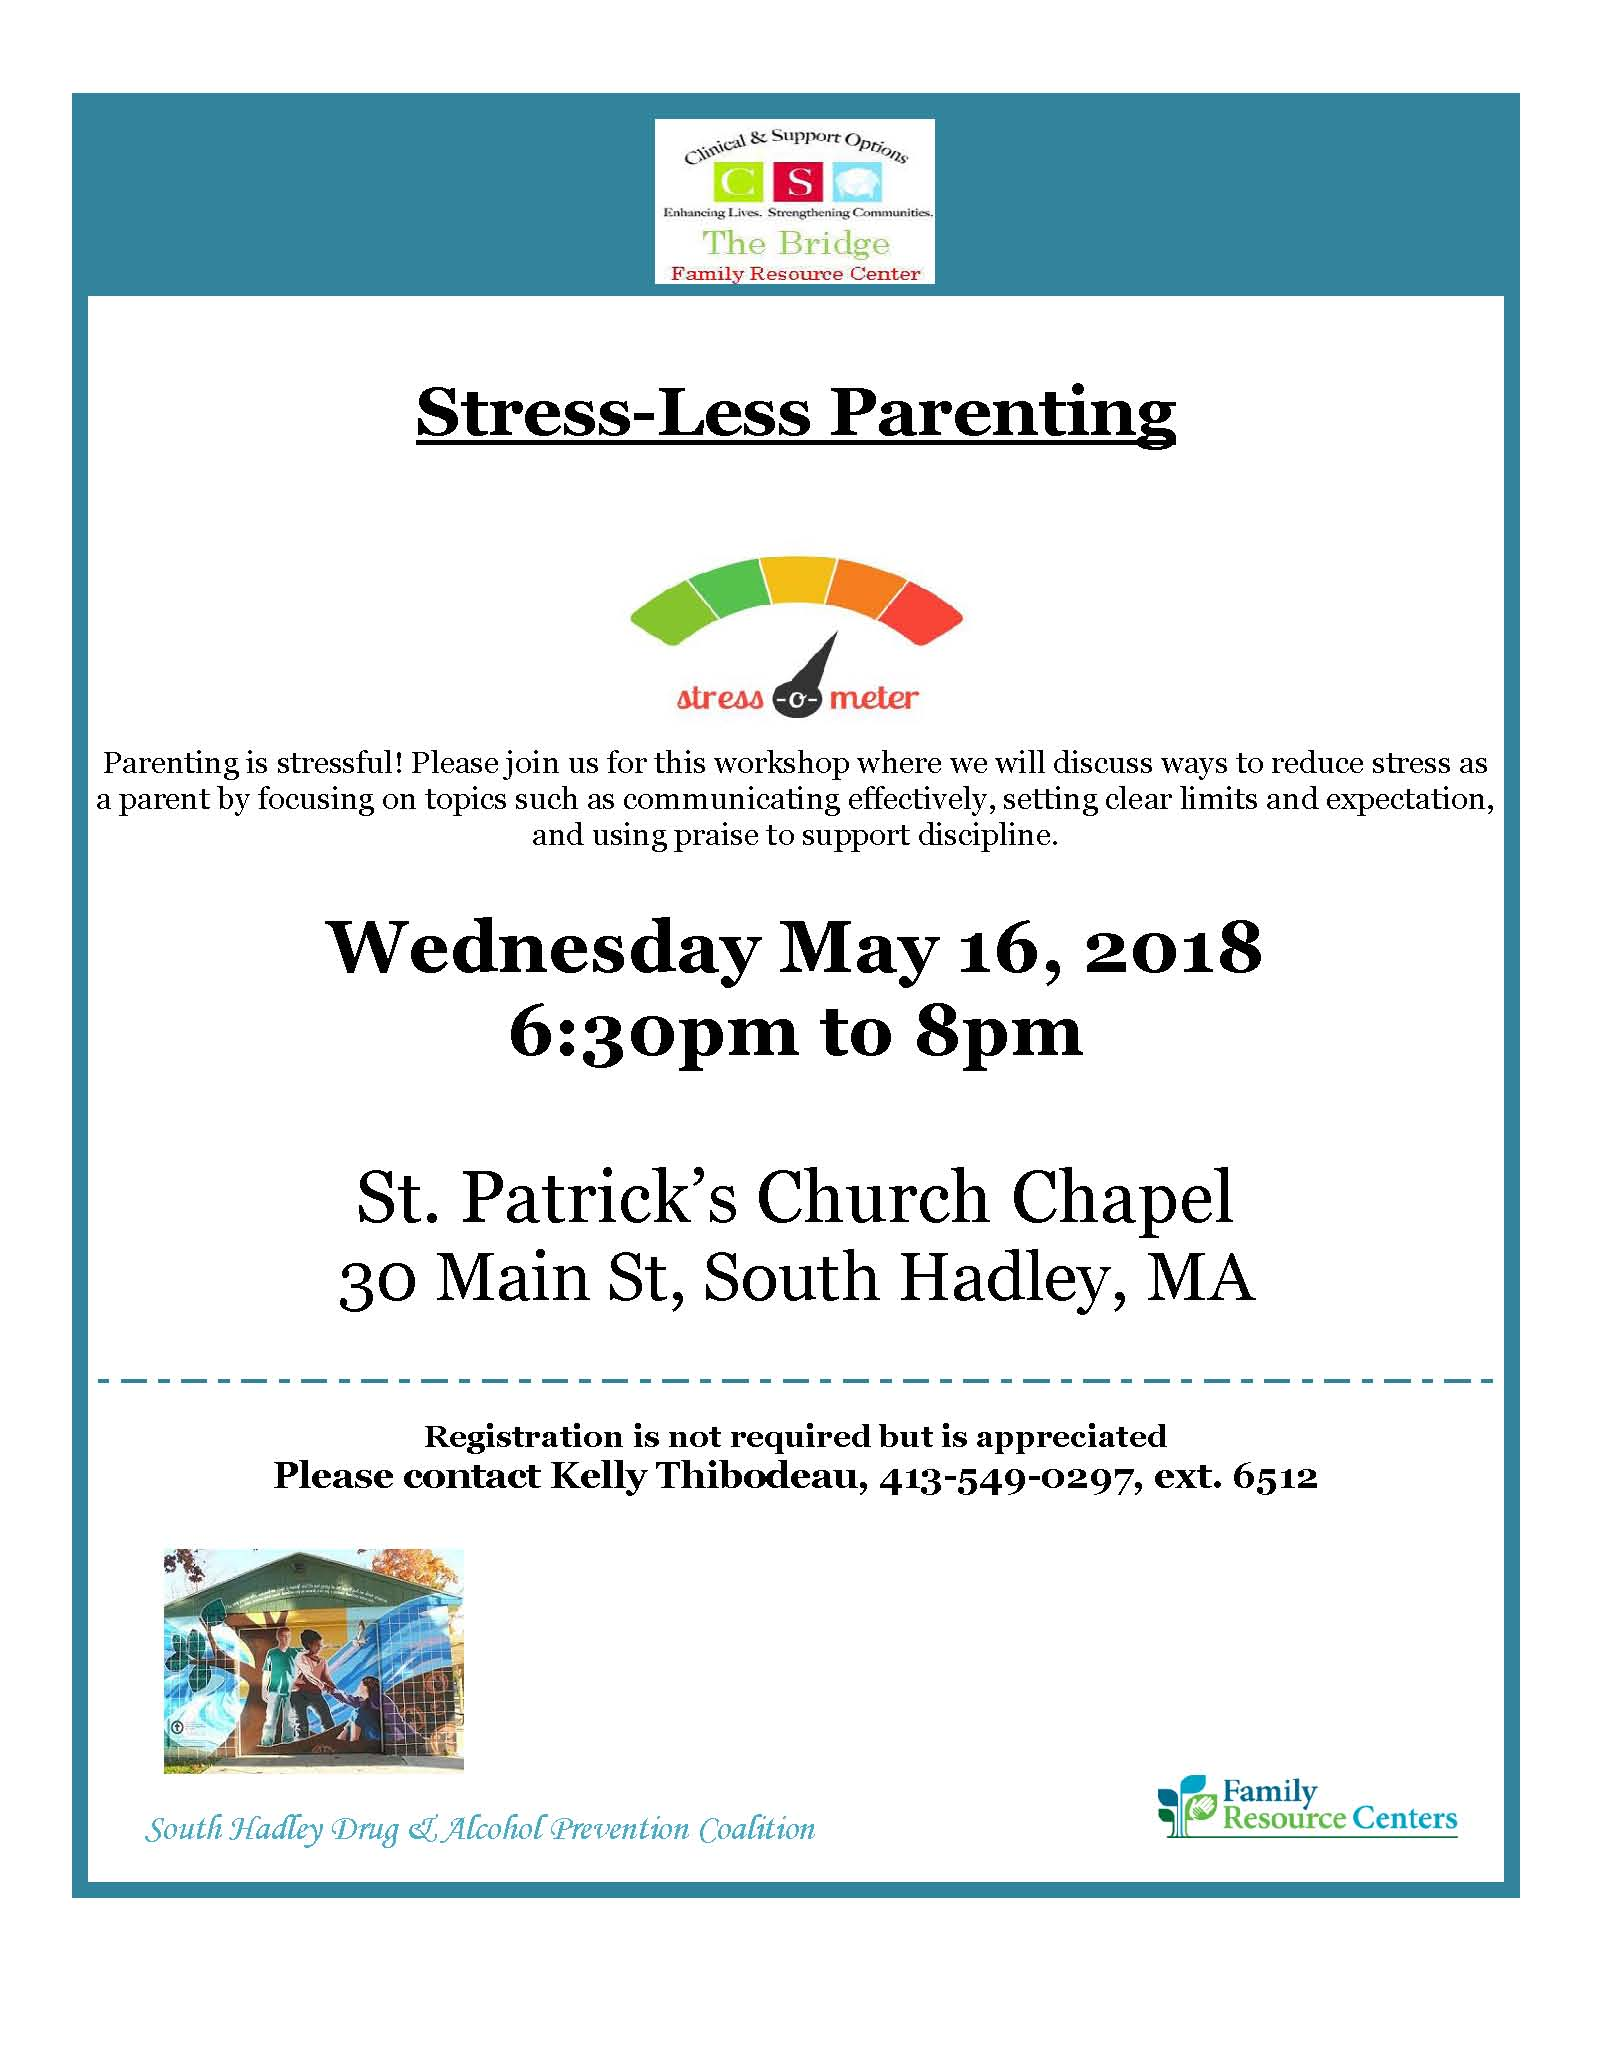 Flyer for Lunch and Learn Stress-Less Parenting (1)May 2018.jpg